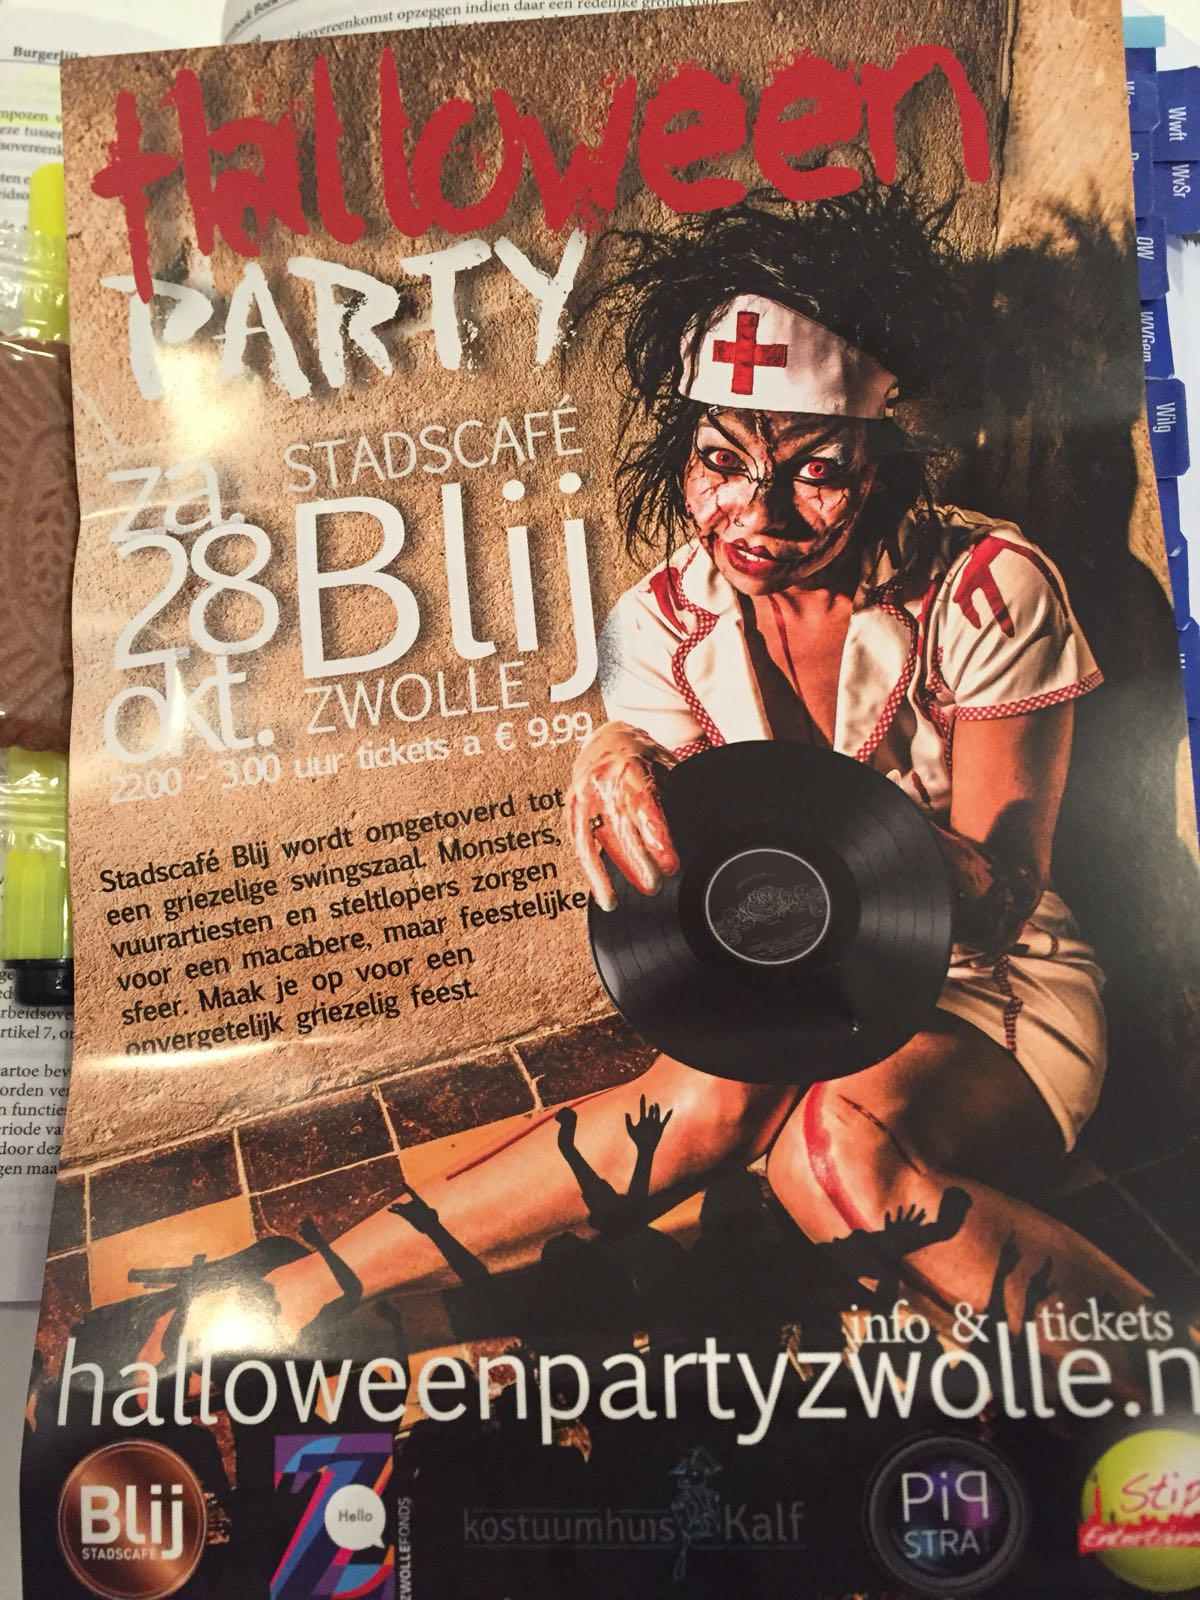 19-10-2017 Halloween party Zwolle